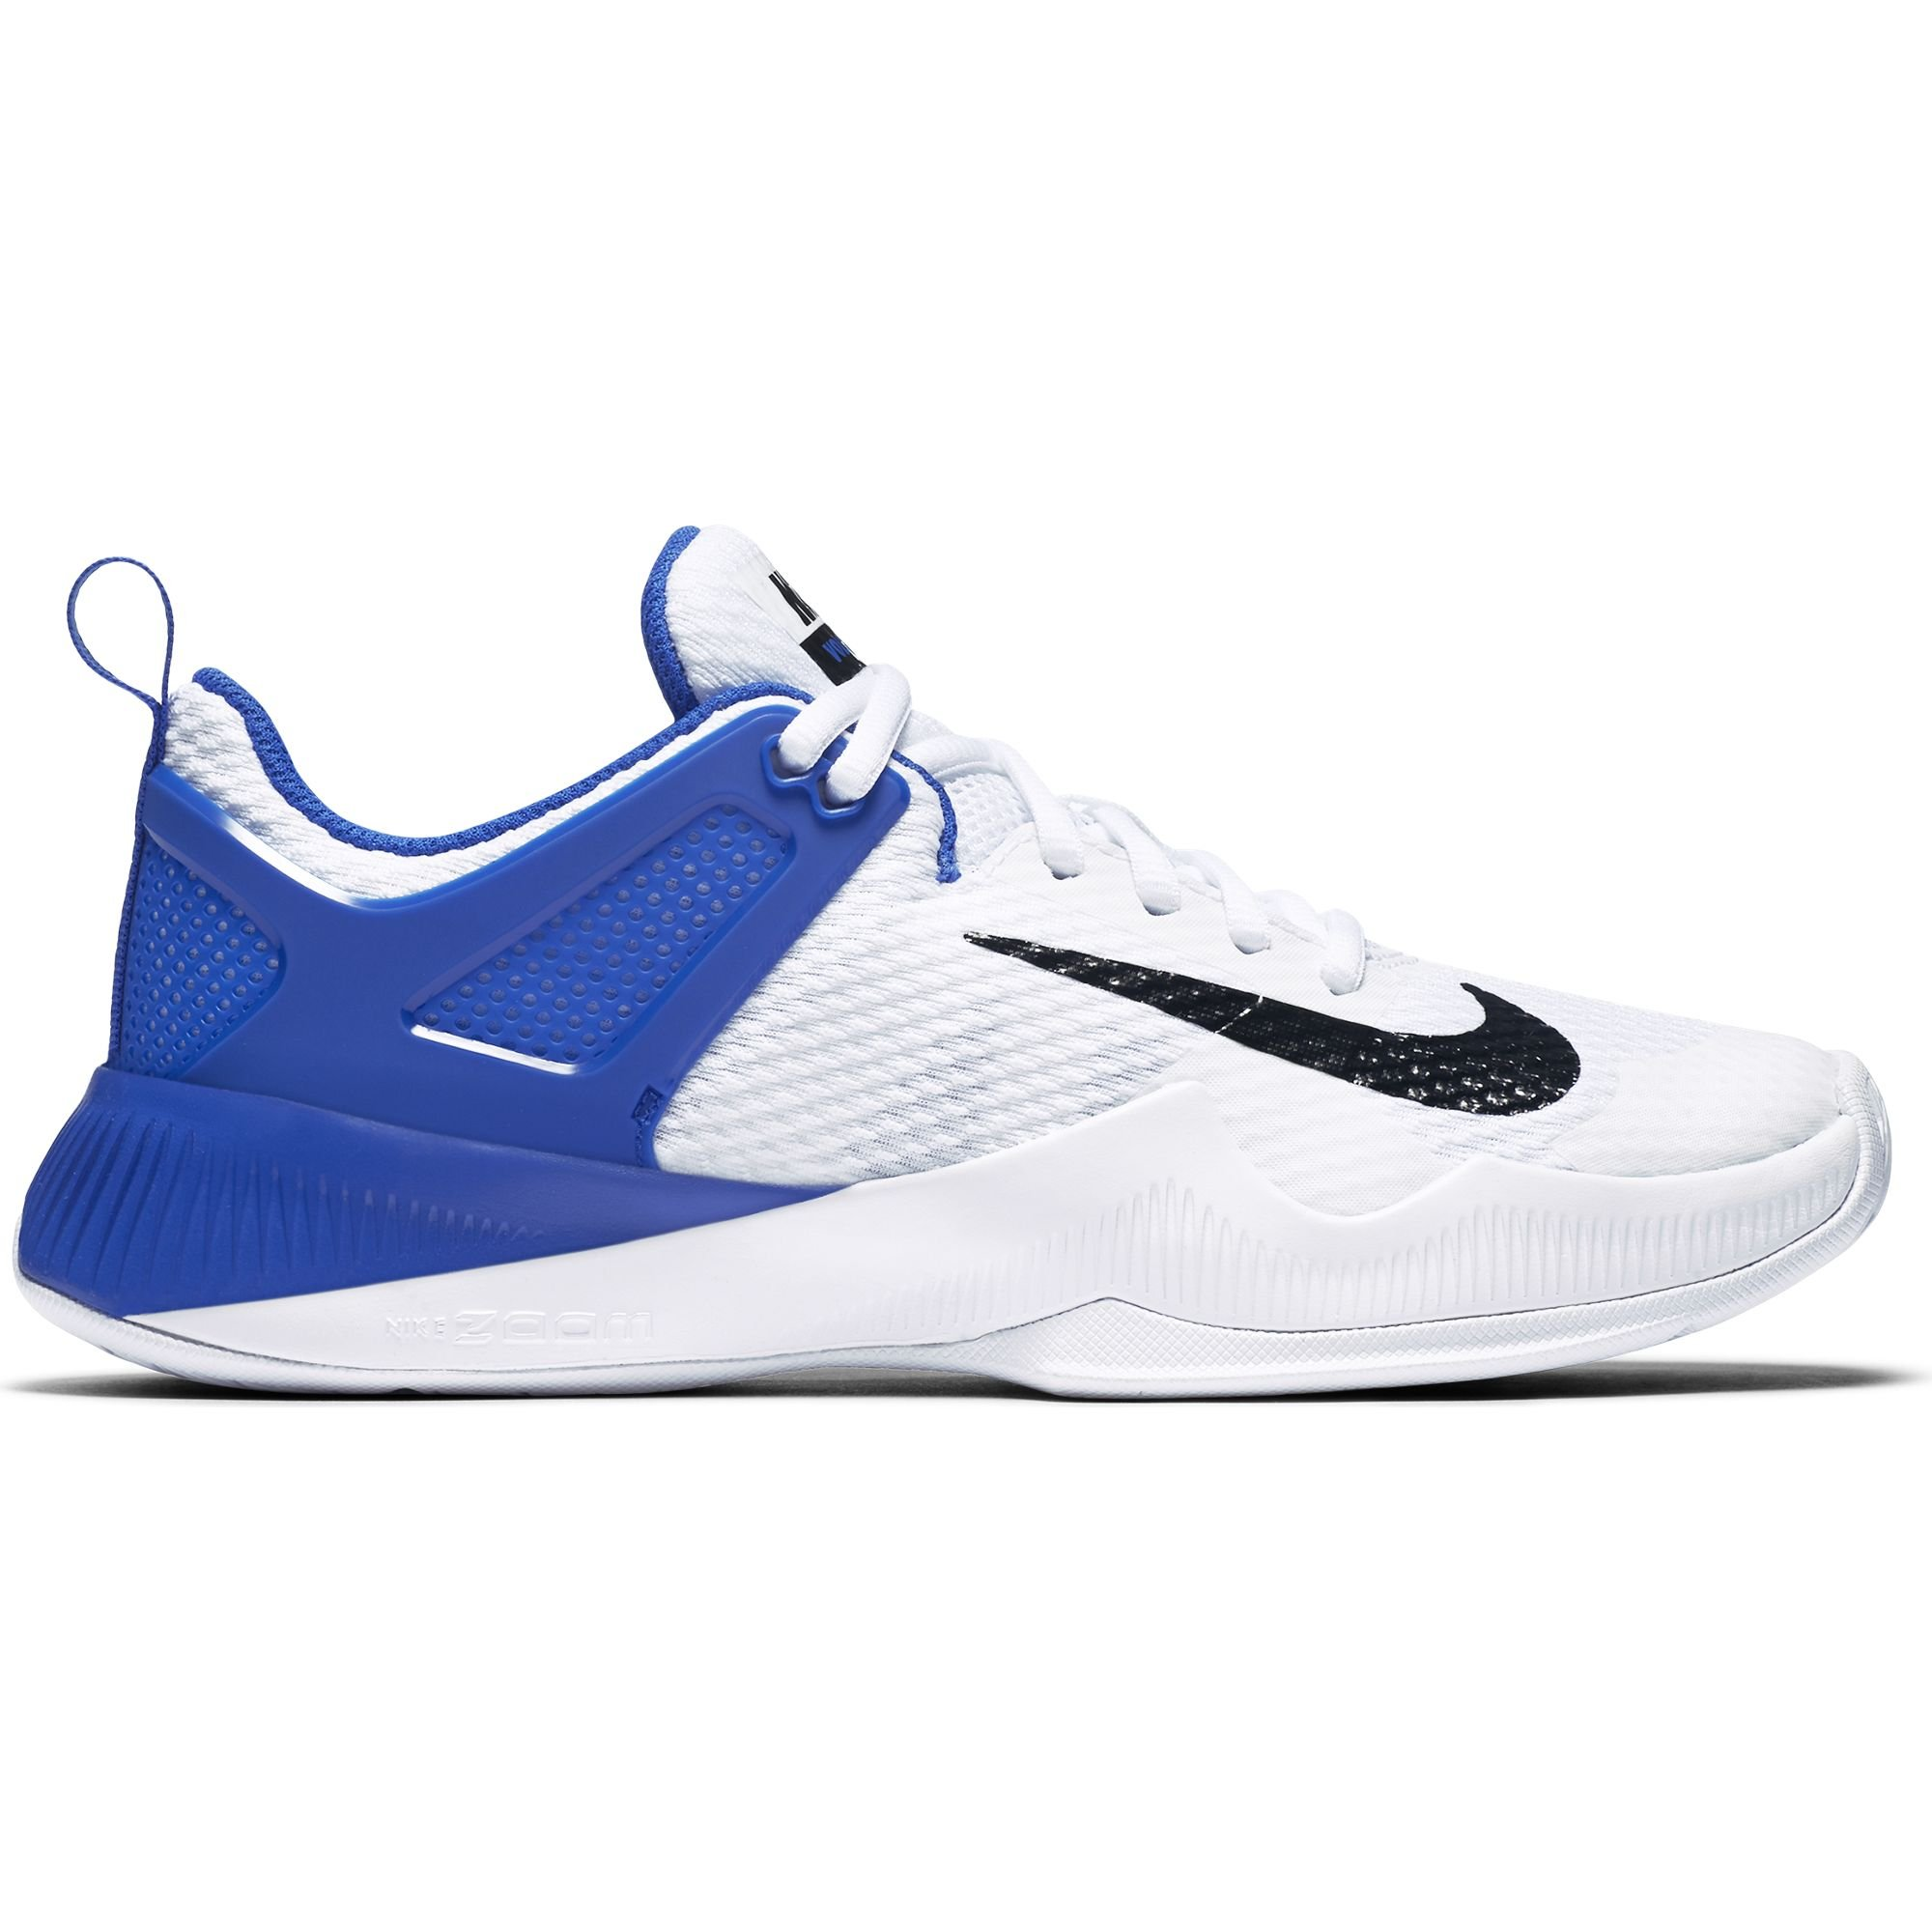 Women's Nike Air Zoom Hyperace Volleyball Shoes White/Black/Game Royal Size 9.5 M US